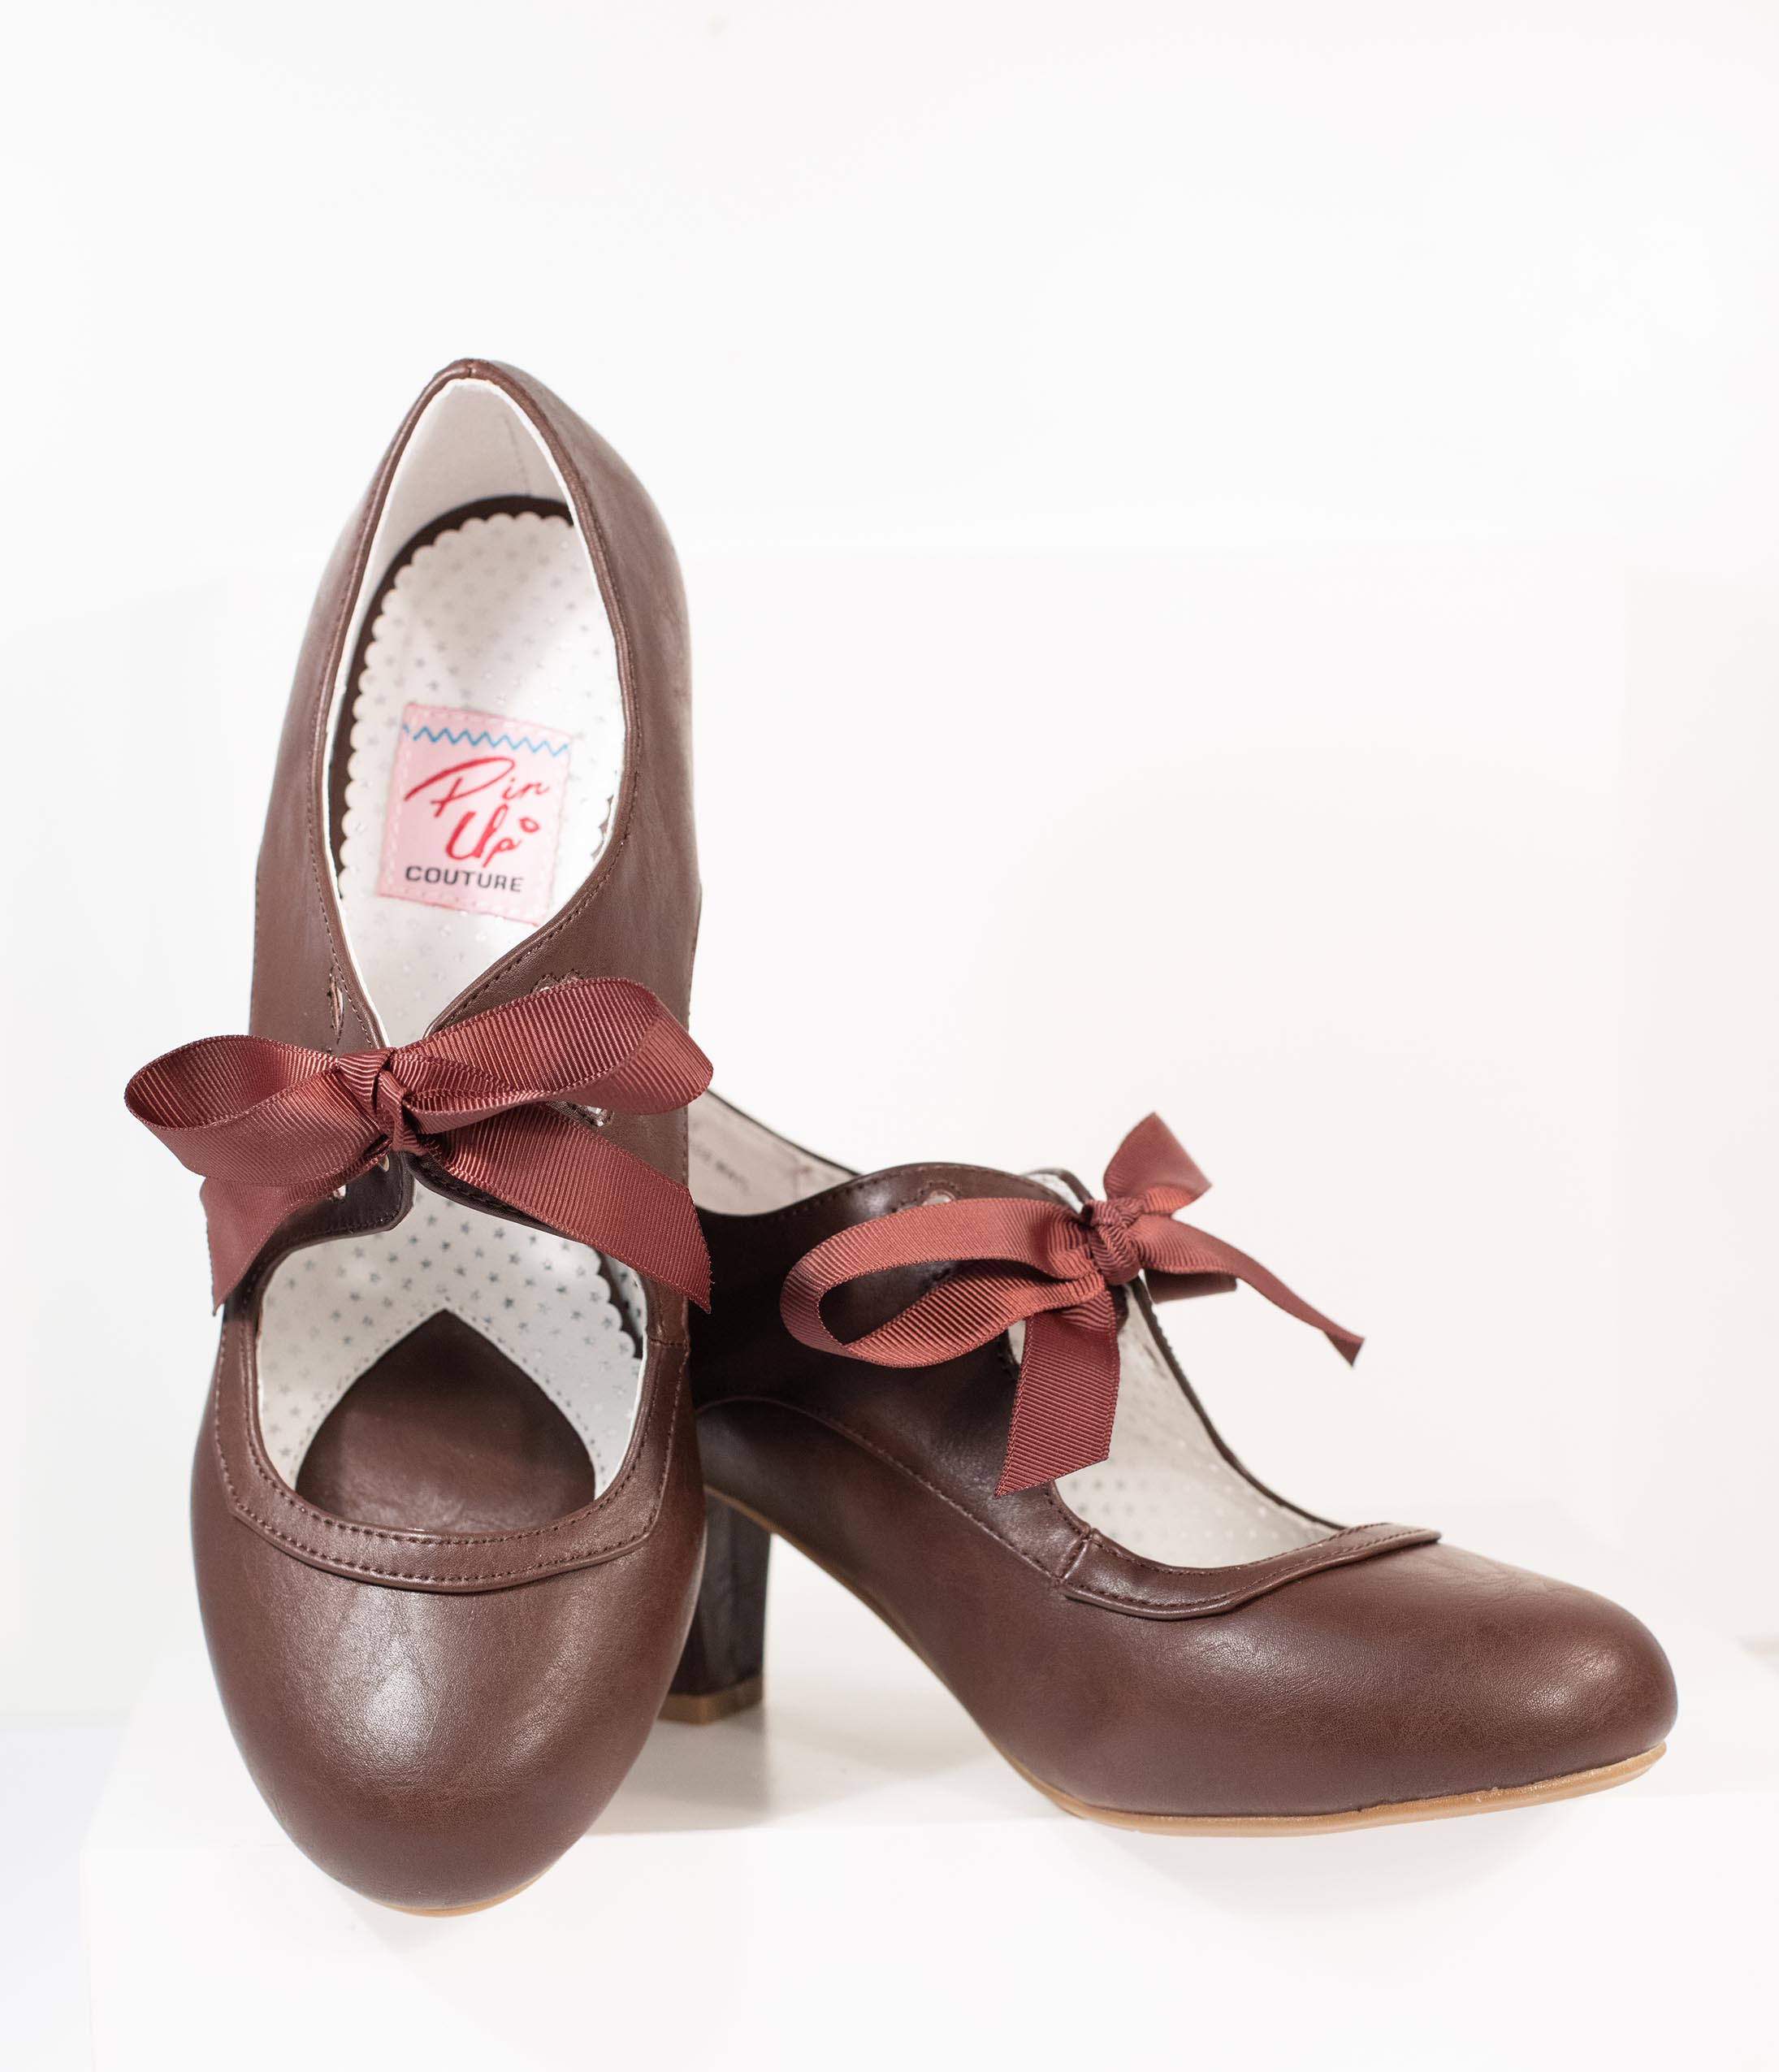 Vintage Heels, Retro Heels, Pumps, Shoes Vintage Style Dark Brown Leatherette Wiggle Bow Heels $66.00 AT vintagedancer.com